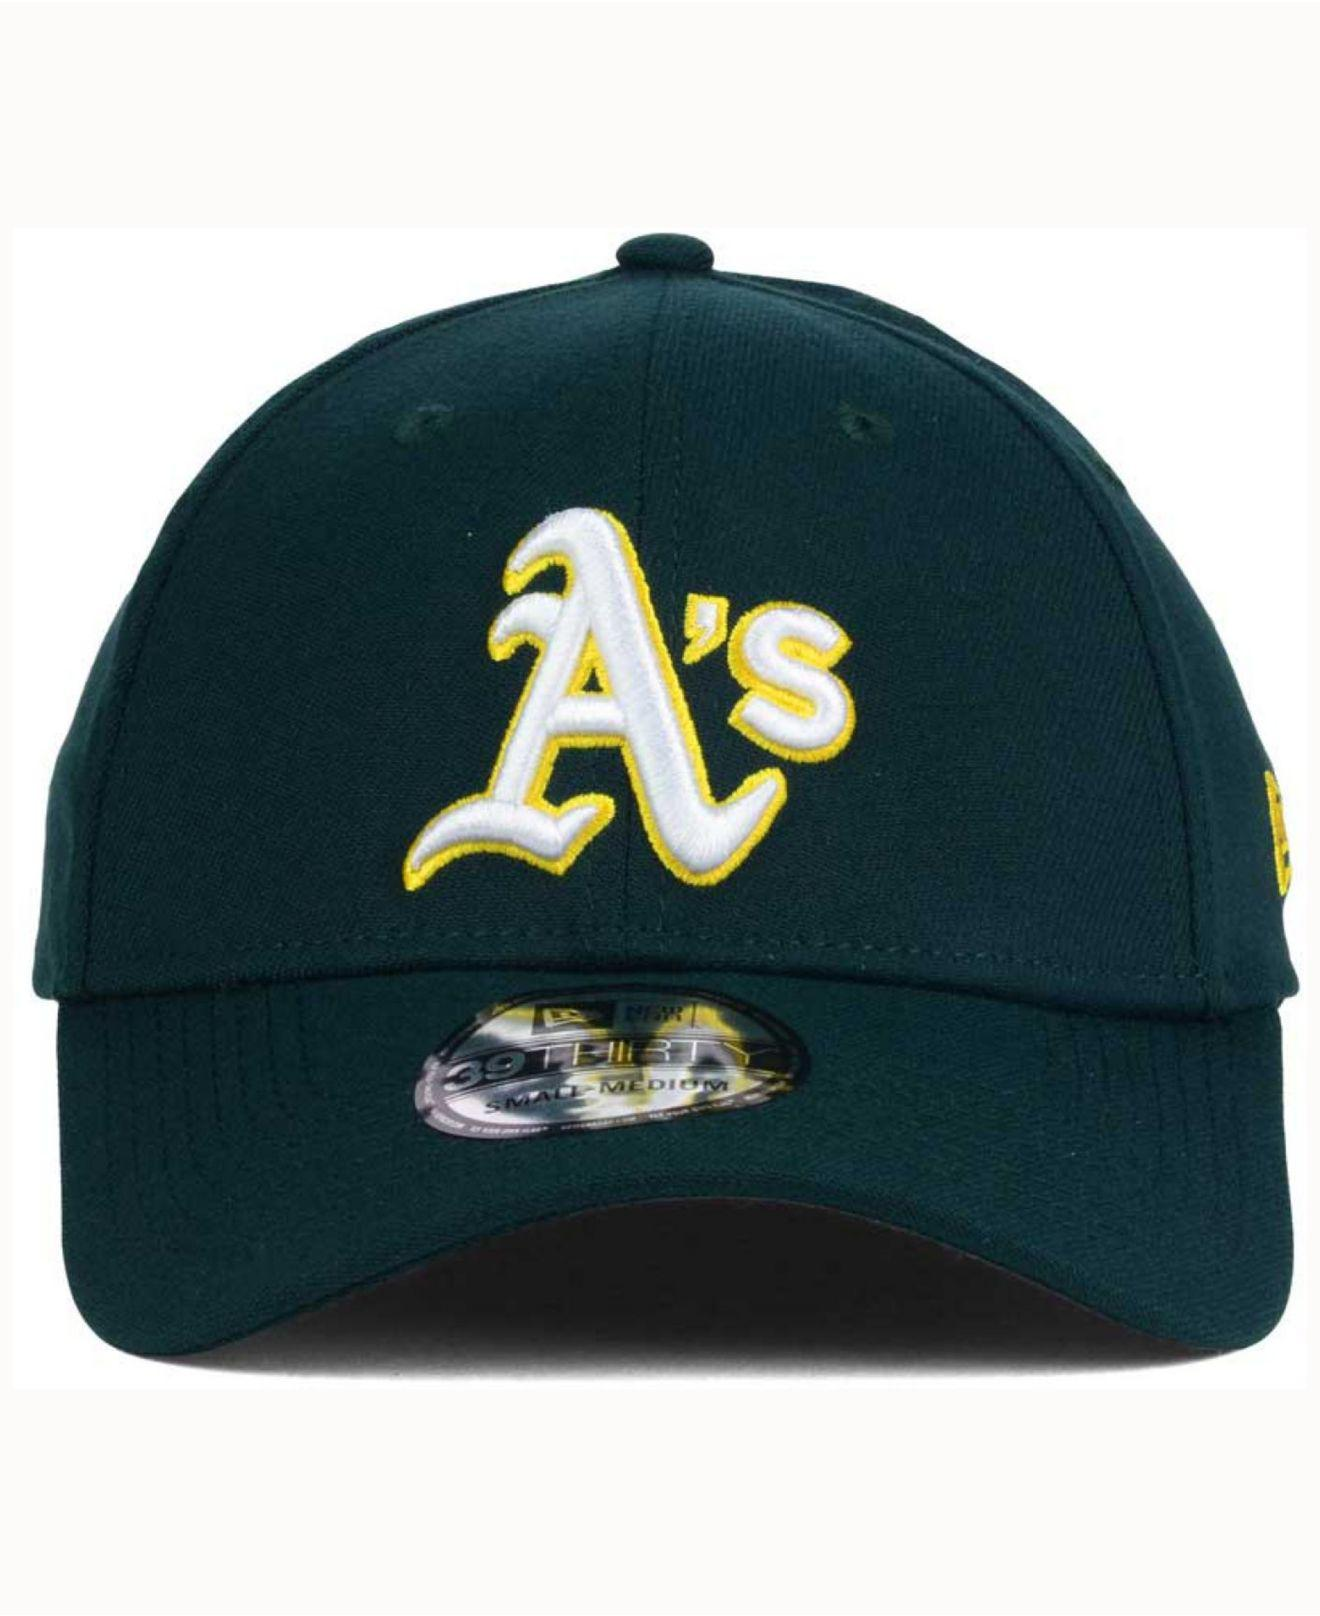 detailed look ddb35 f079b ... mlb upright yellow snap dub 9fifty snapback cap d9dd2 c8c30  where can  i buy lyst ktz oakland athletics coop 39thirty cap in green for men 19852